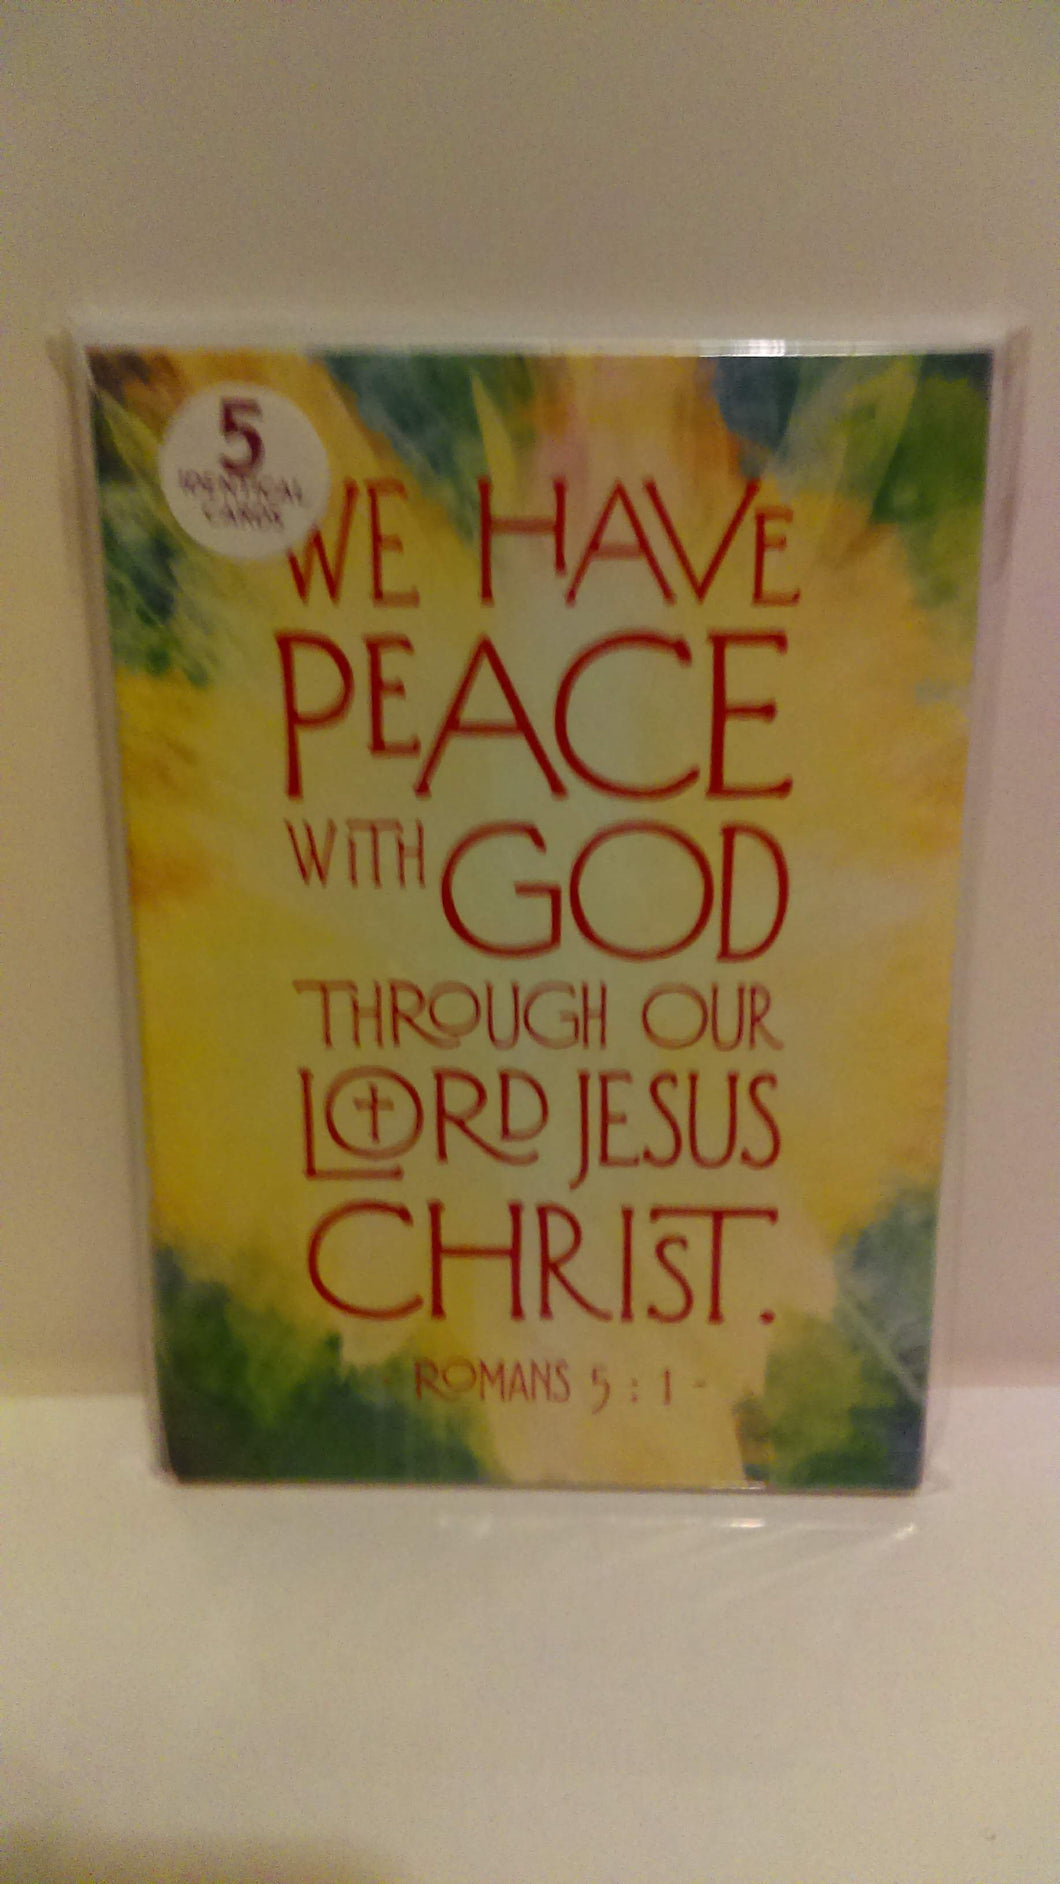 We have peace with God through our Lord Jesus Christ